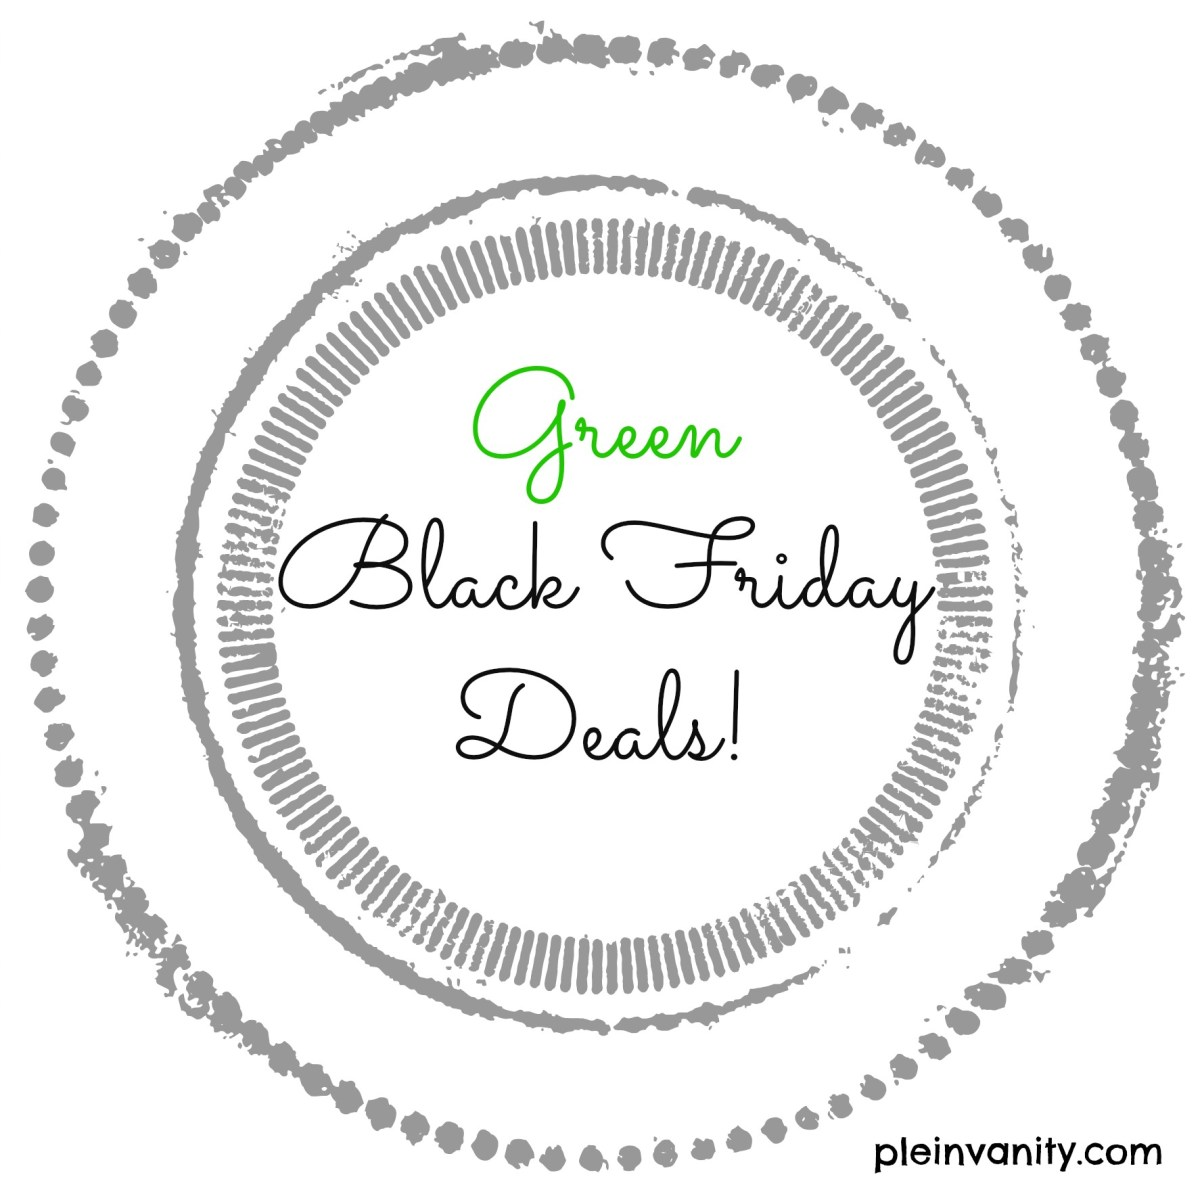 Celebrate a Green Black Friday 2014!